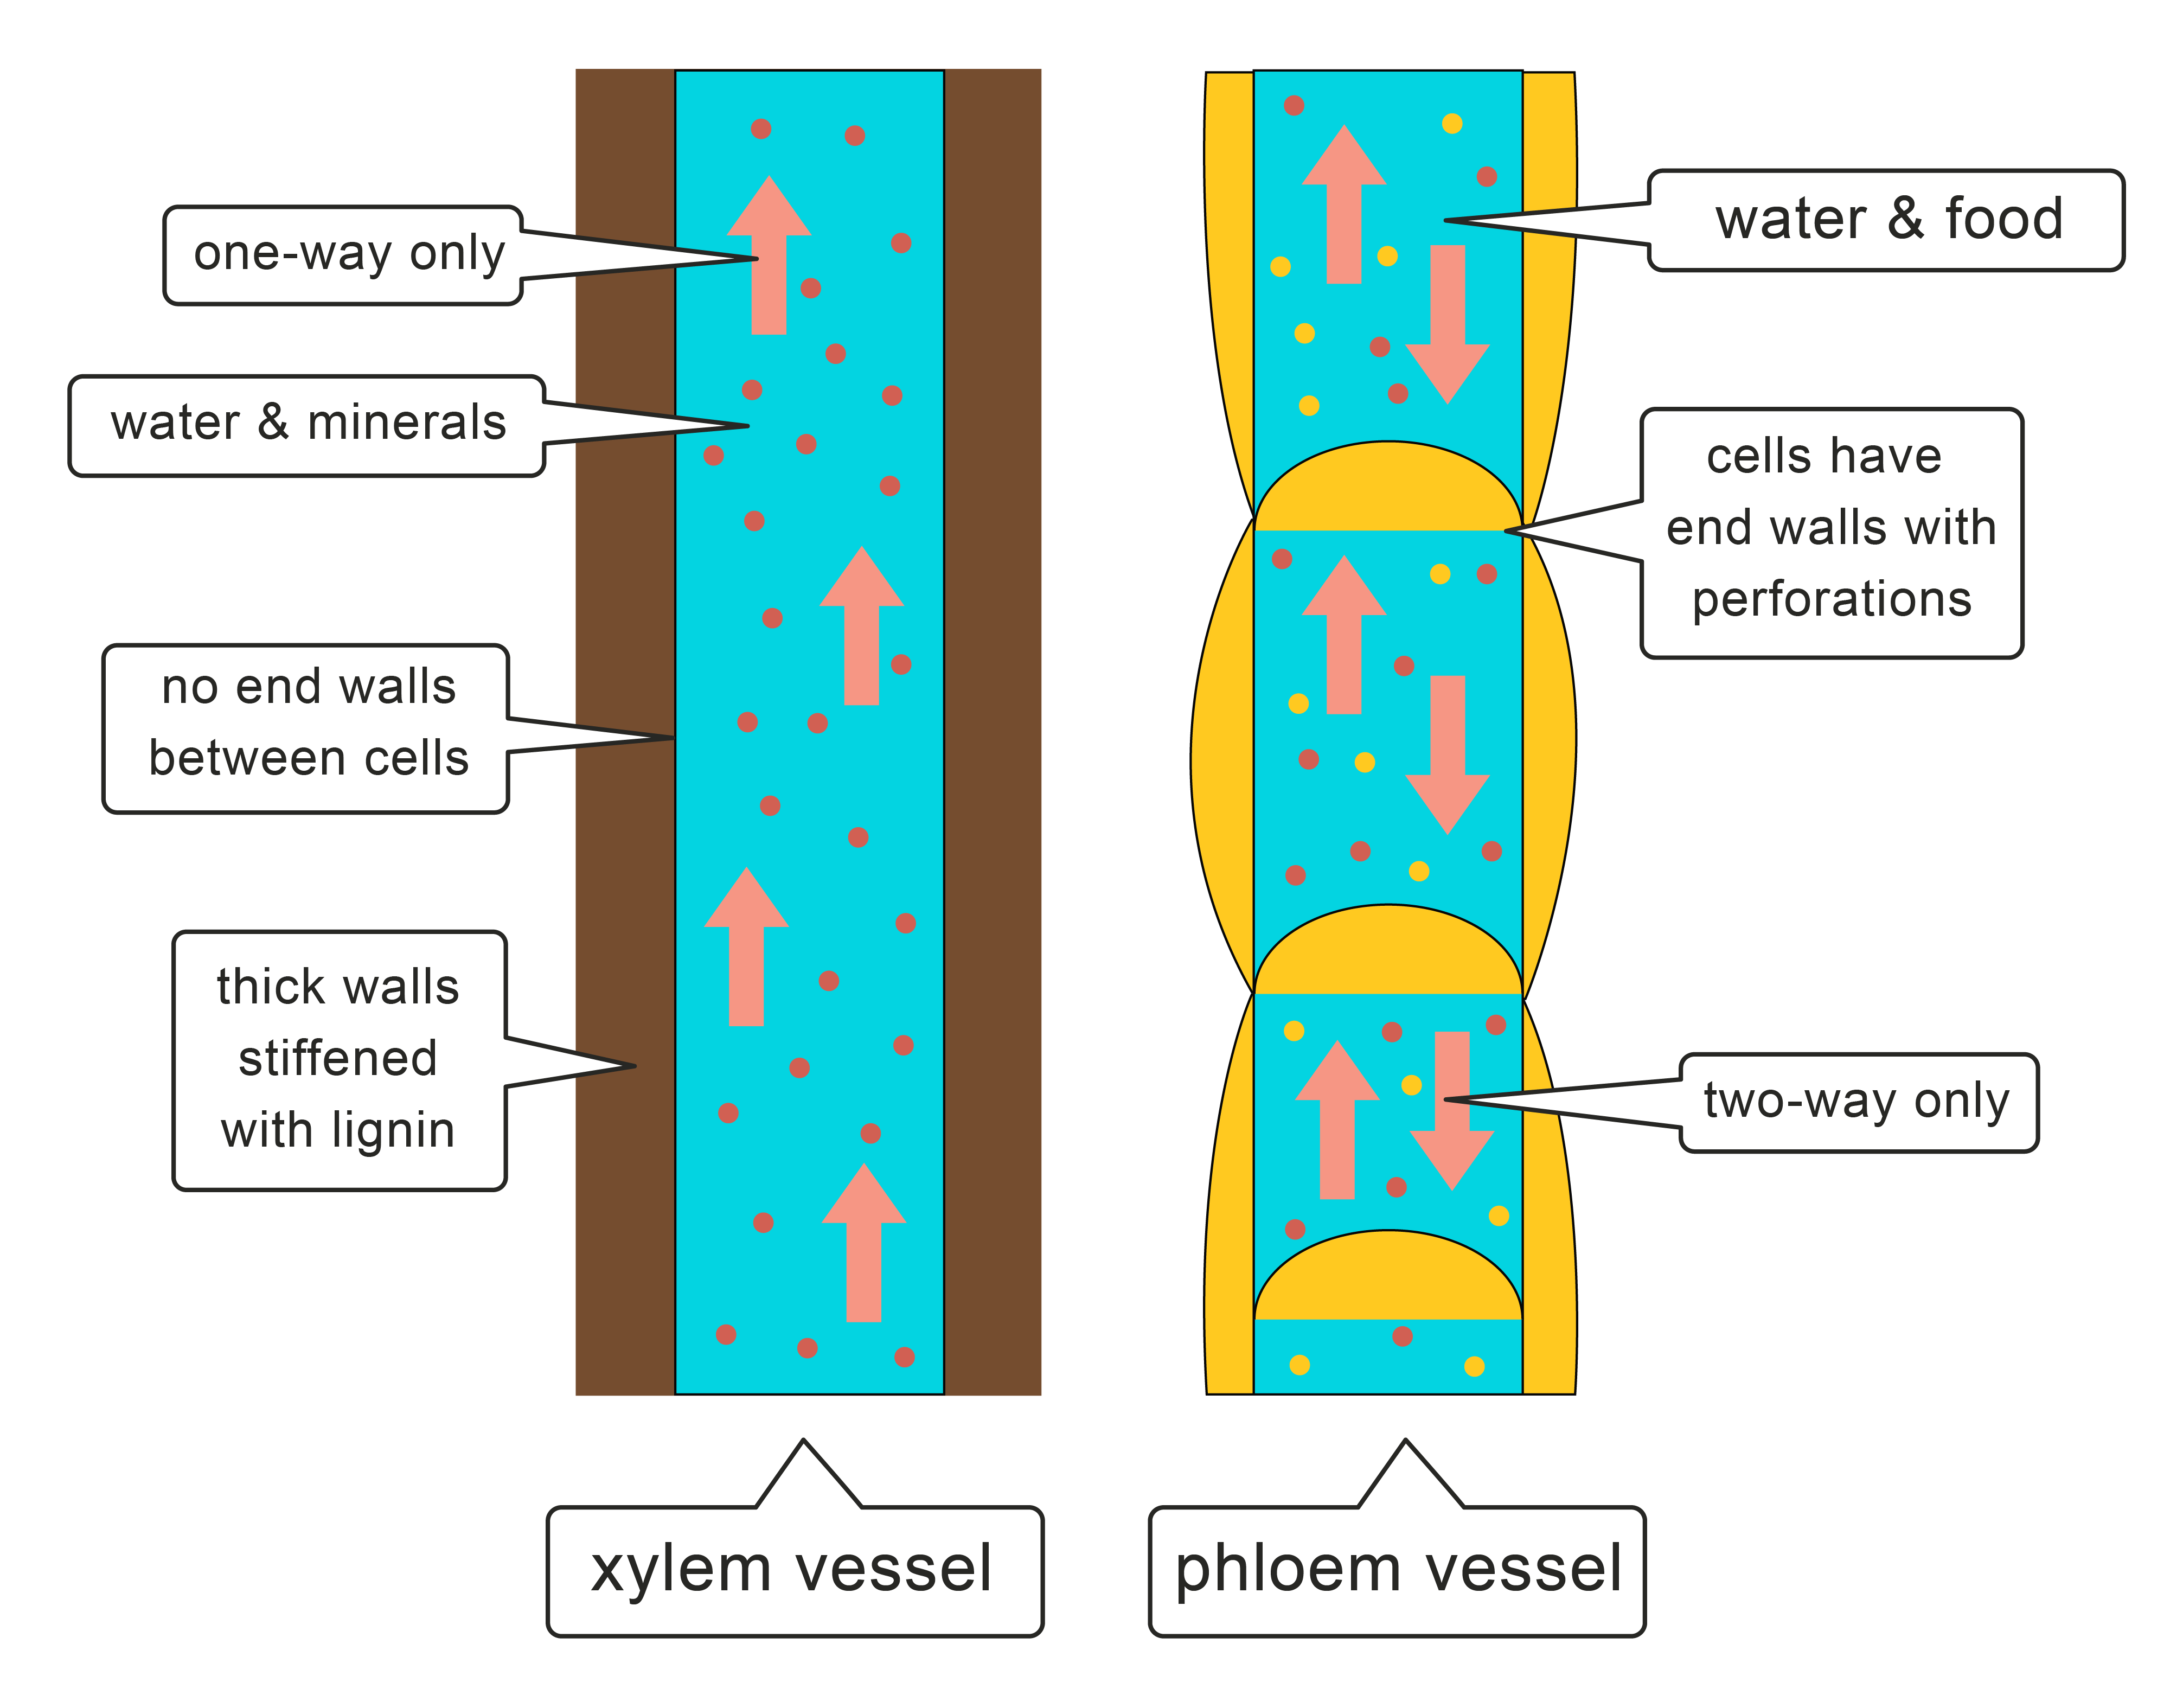 Image of xylem and phloem vessels